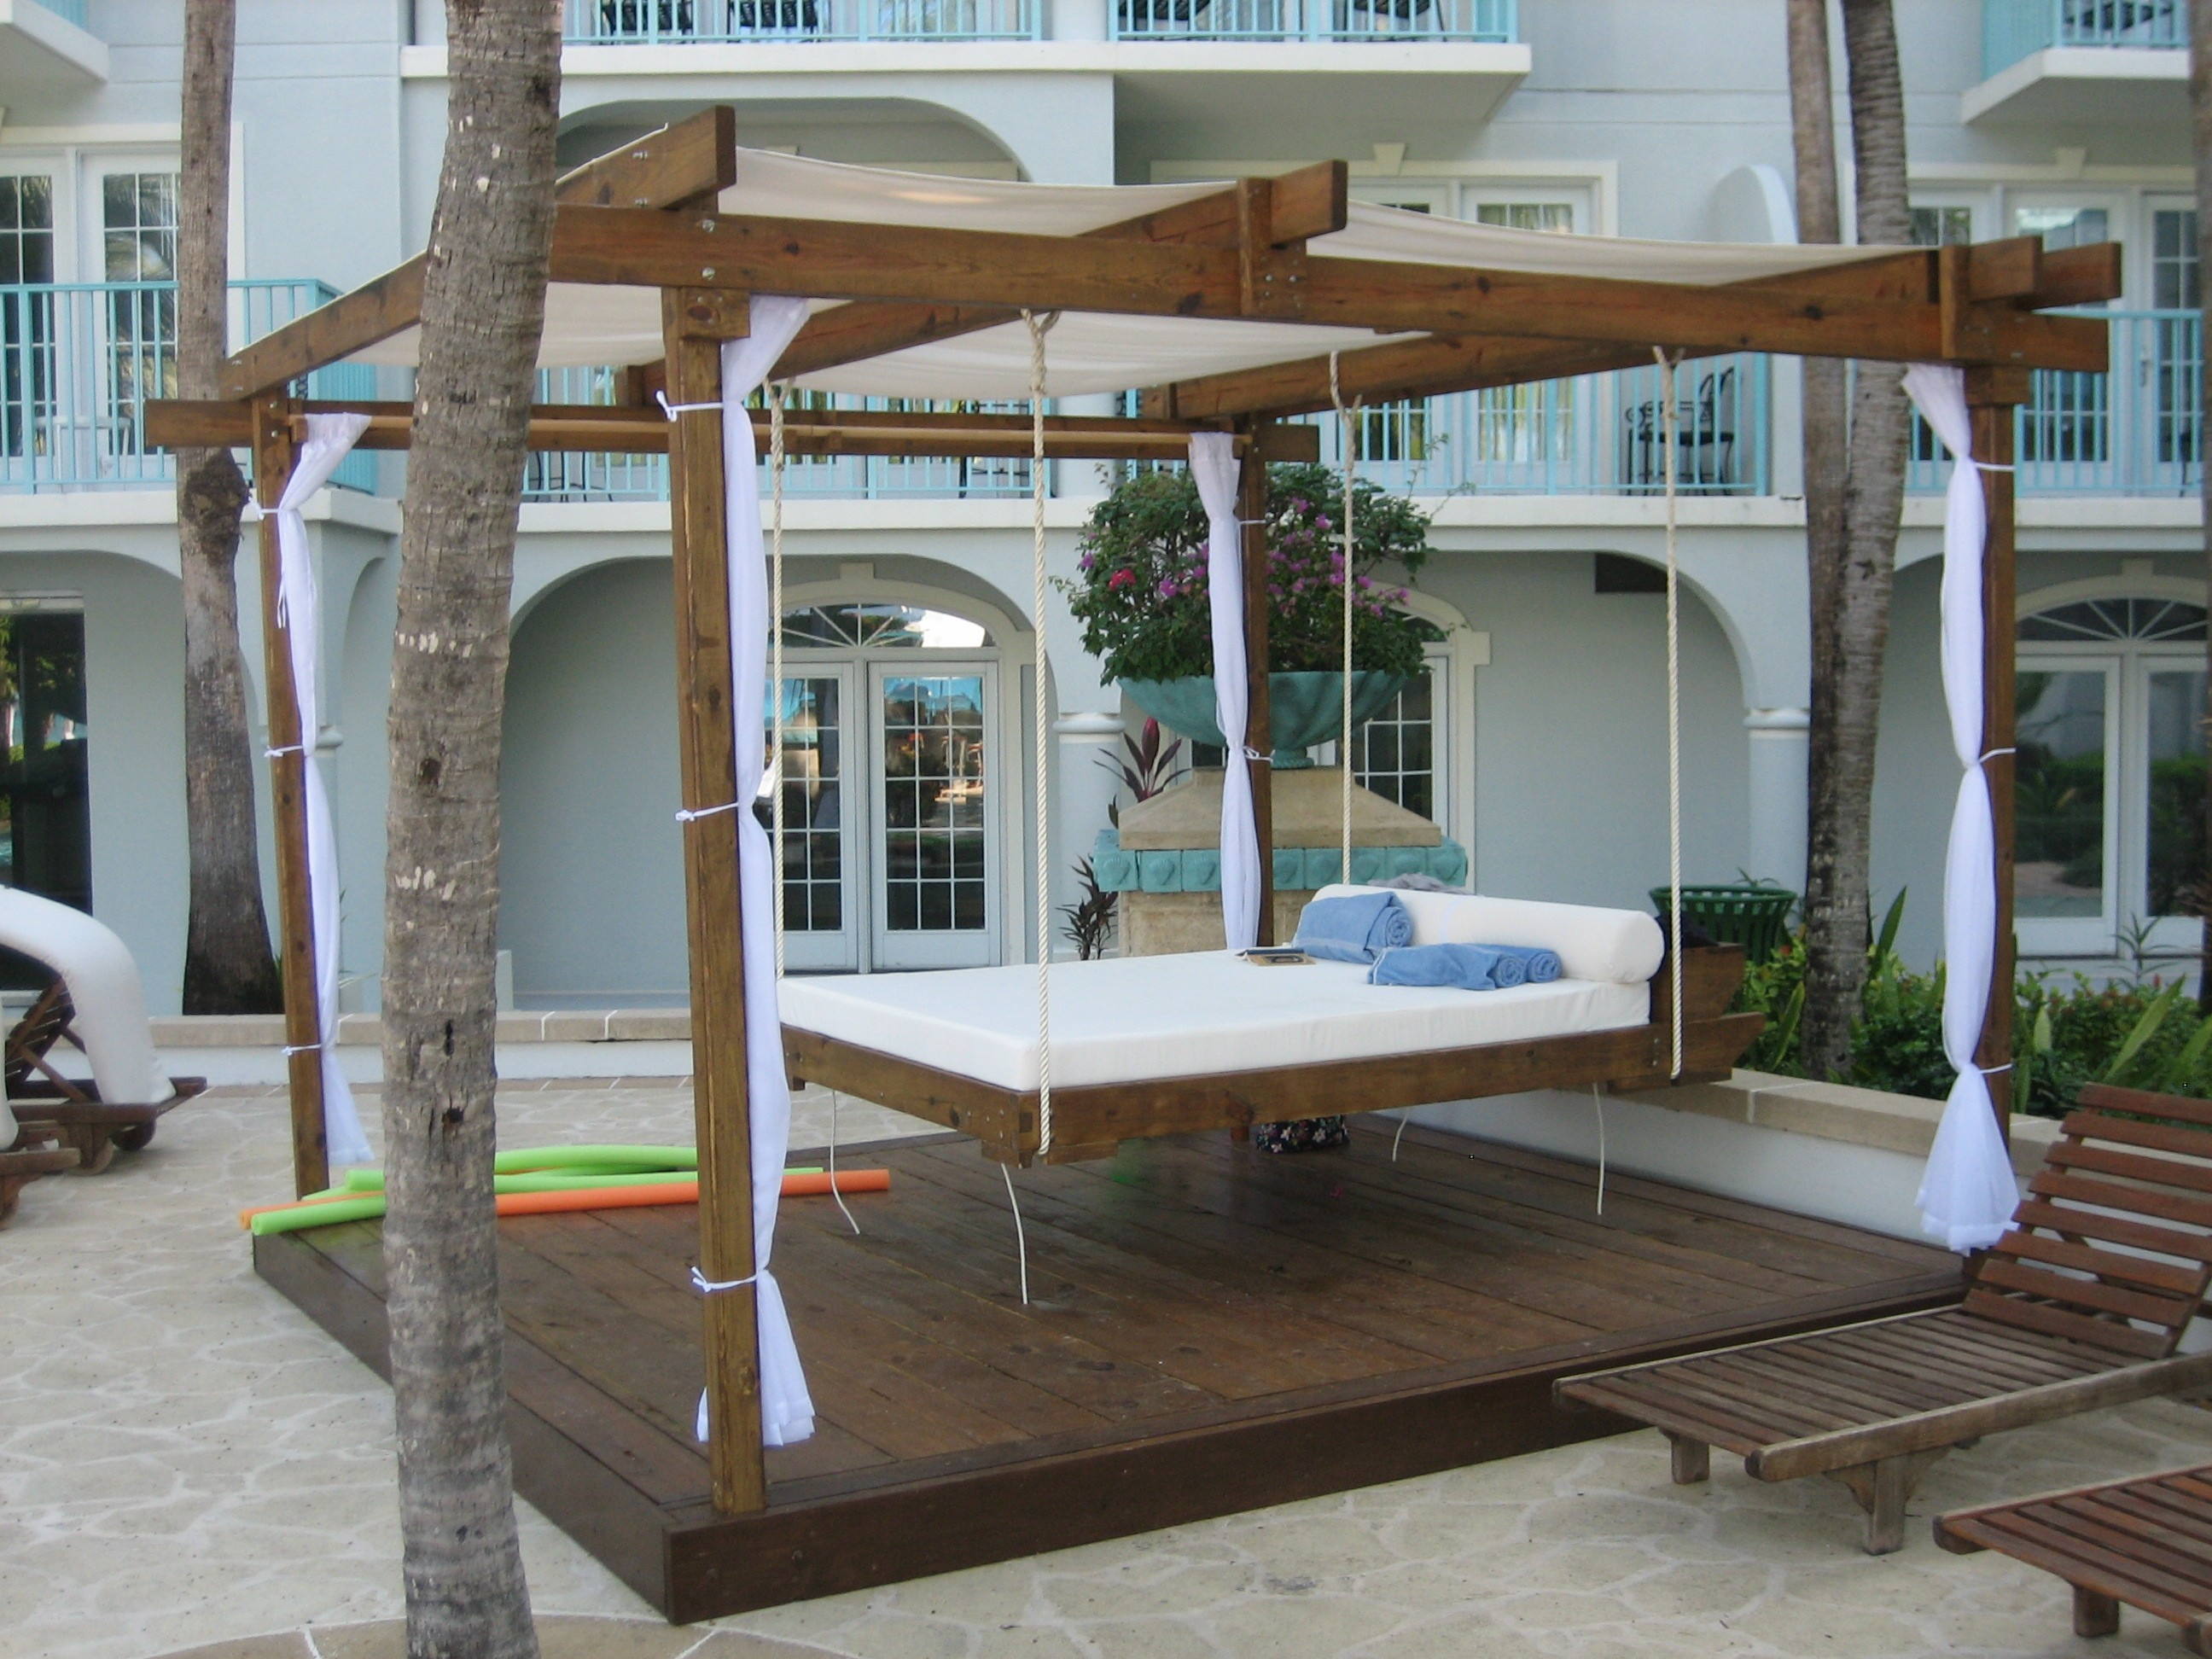 outdoor-hanging-beds-under-brown-teak-wood-pergola-deck-roof-decor-f-with-white-curtains_covered-pergola-on-deck_home-decor_shabby-chic-home-decor-discount-liquidators-target-office-diy-christmas-uniq